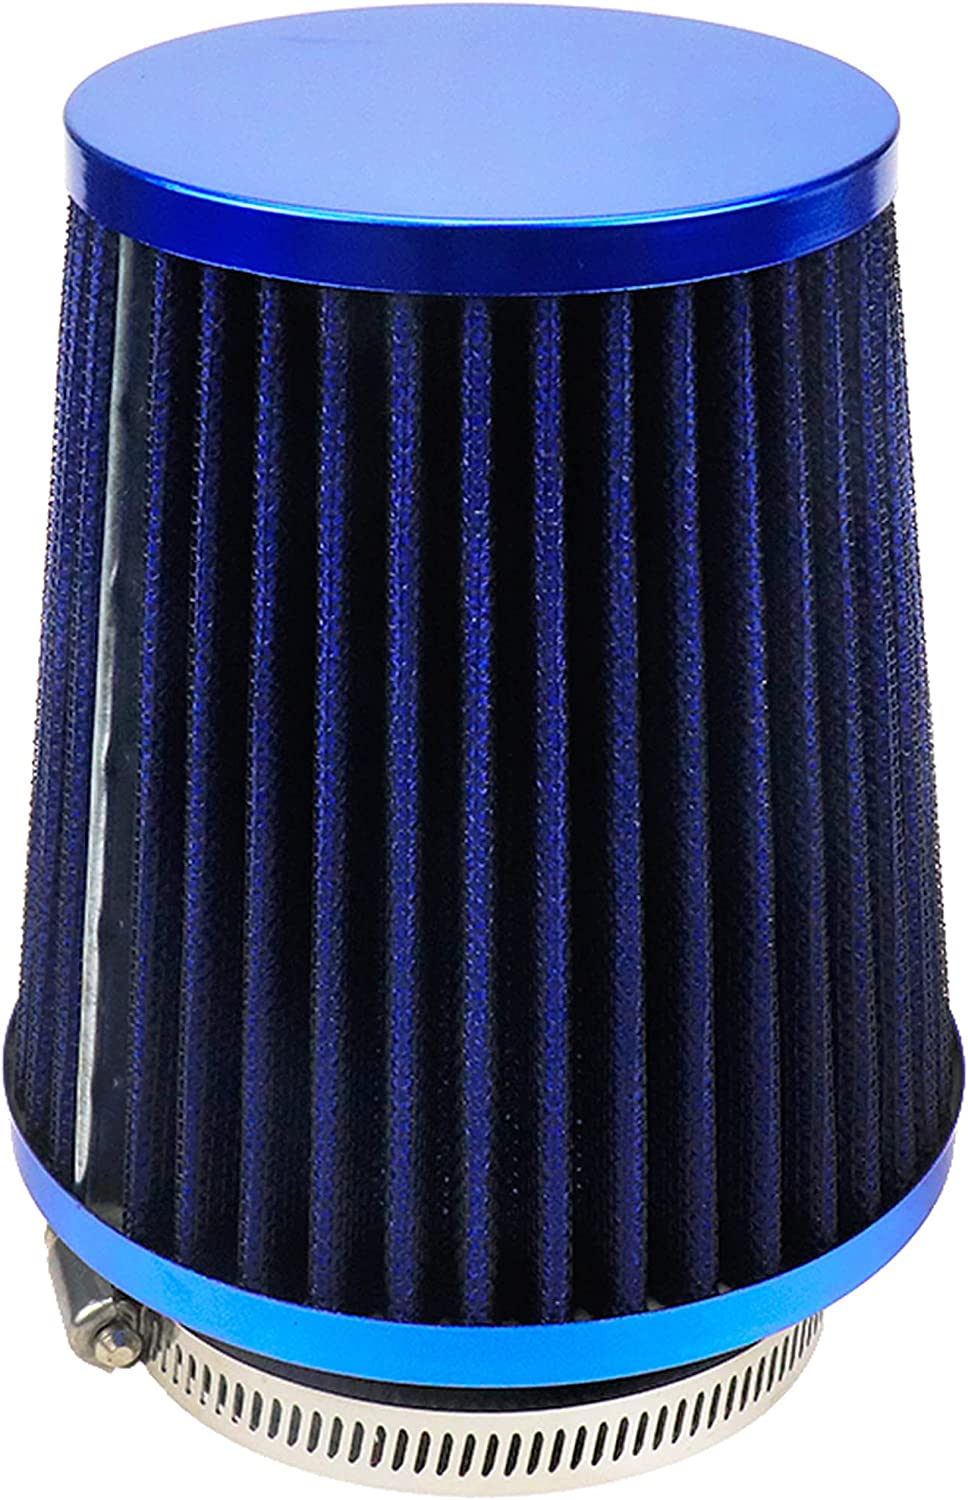 Modengzhe Universal Max 46% OFF Clamp-On Conical Mesh Filter Air Industry No. 1 Intake Rpla